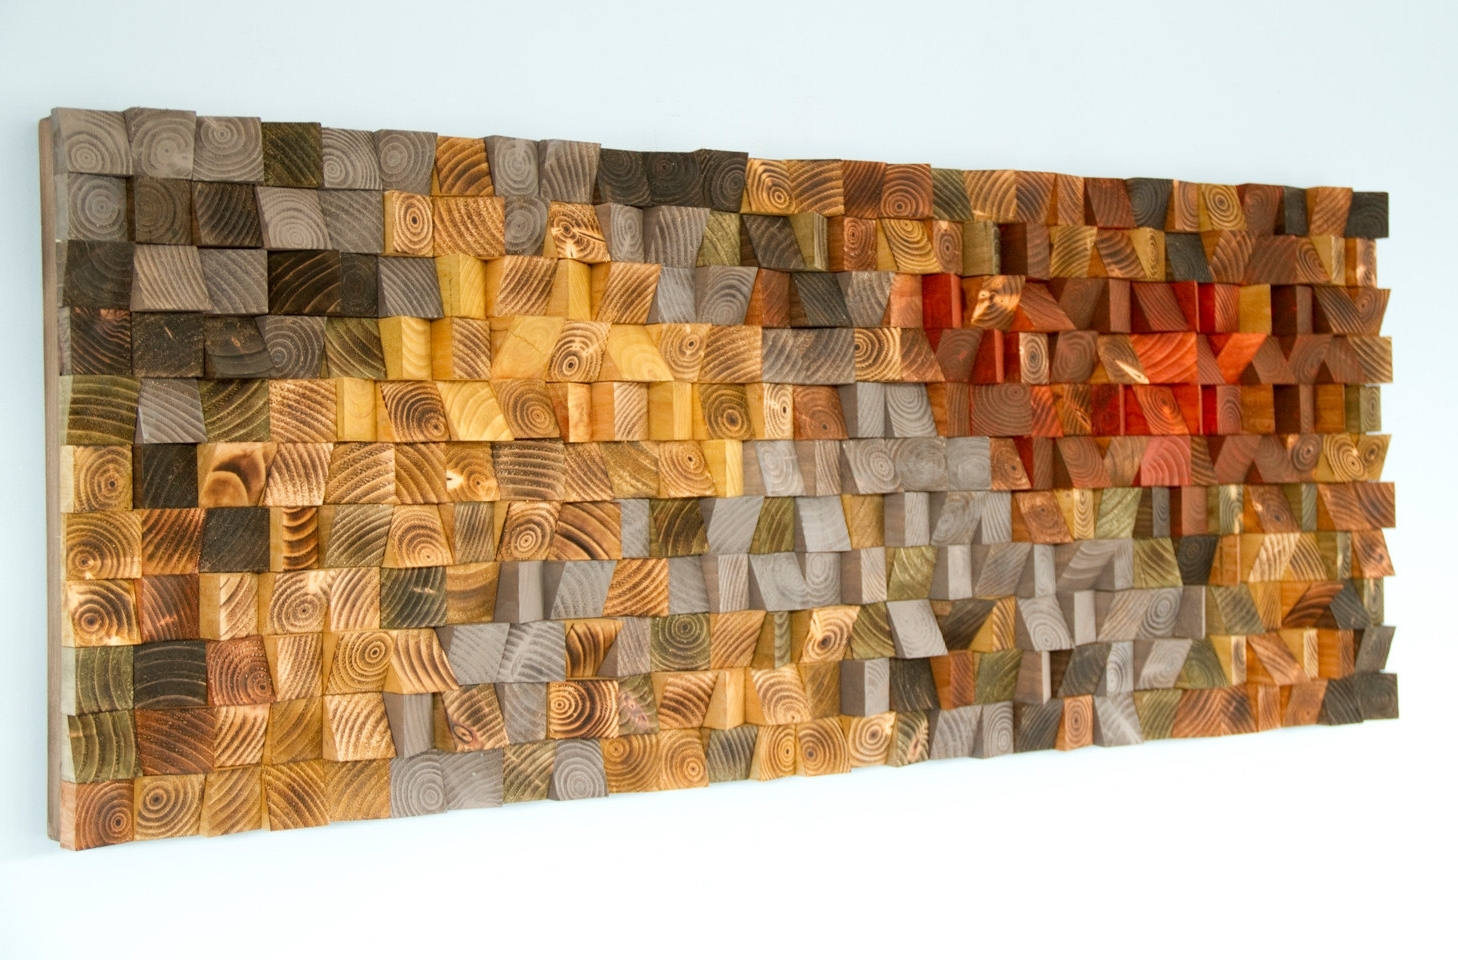 Rustic Wood Wall Art, Wood Wall Sculpture, Abstract Wood Art – Art With Favorite Wood Art Wall (View 8 of 20)